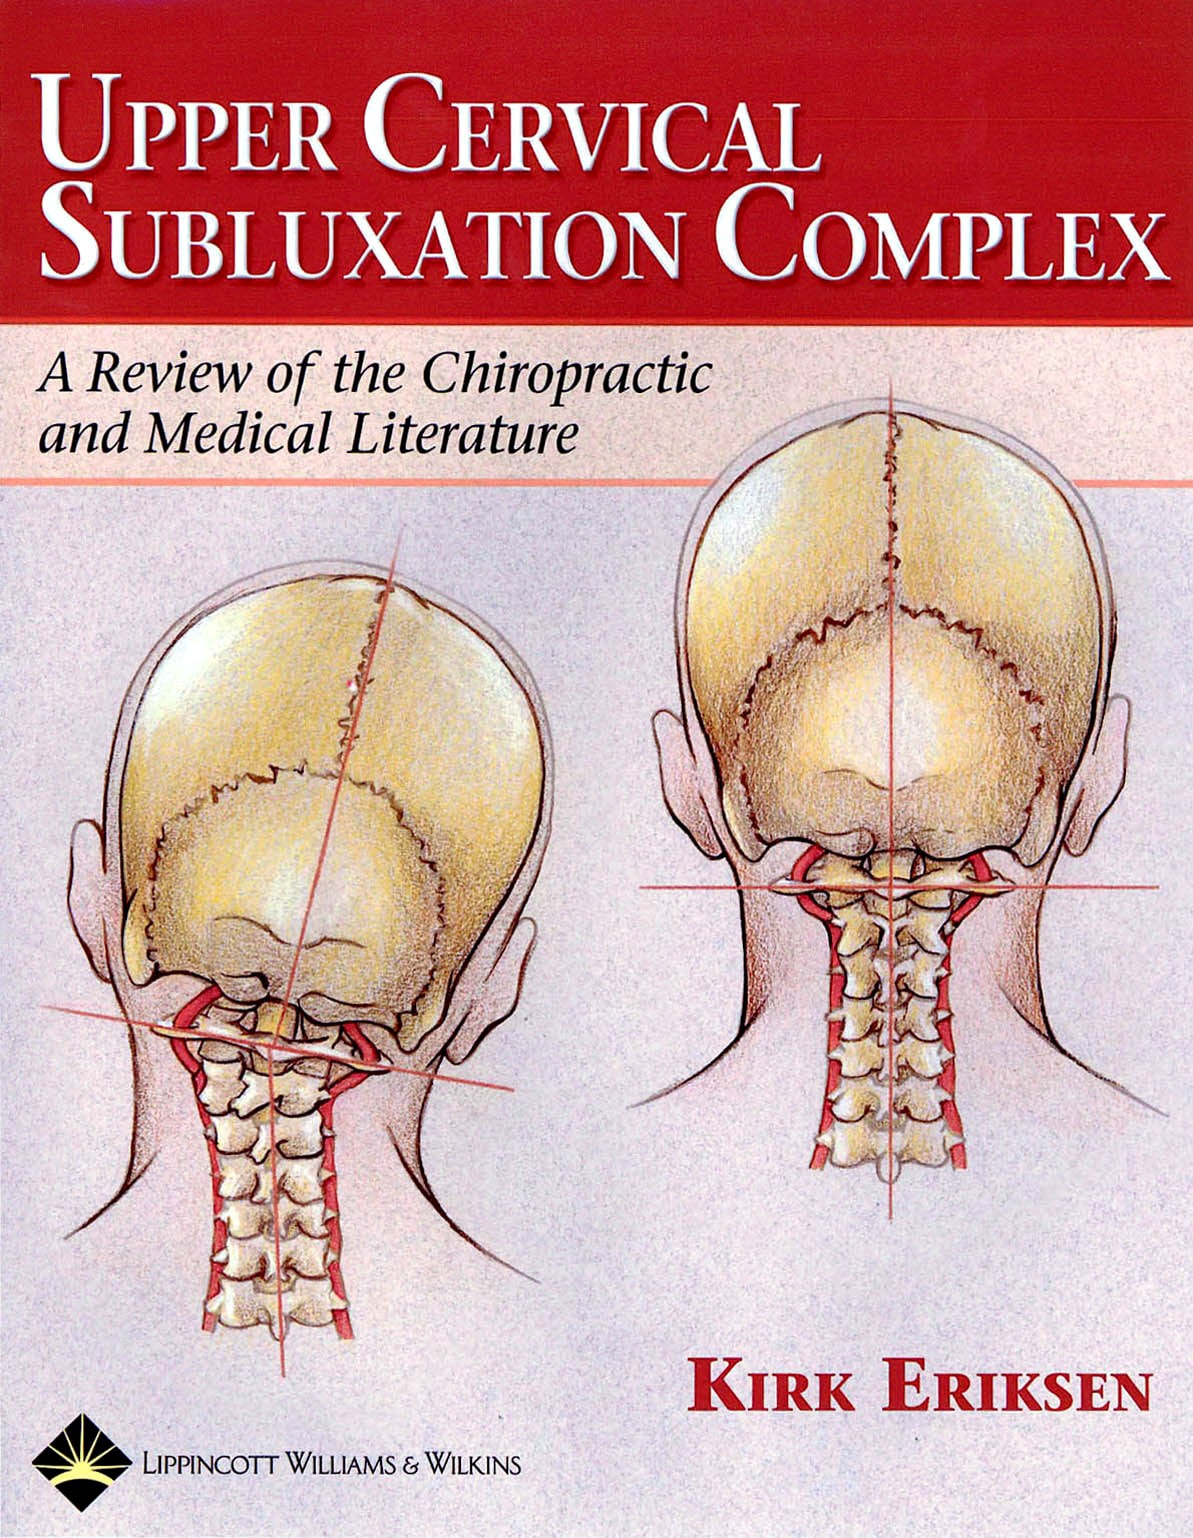 Upper Cervical Subluxation Complex textbook cover